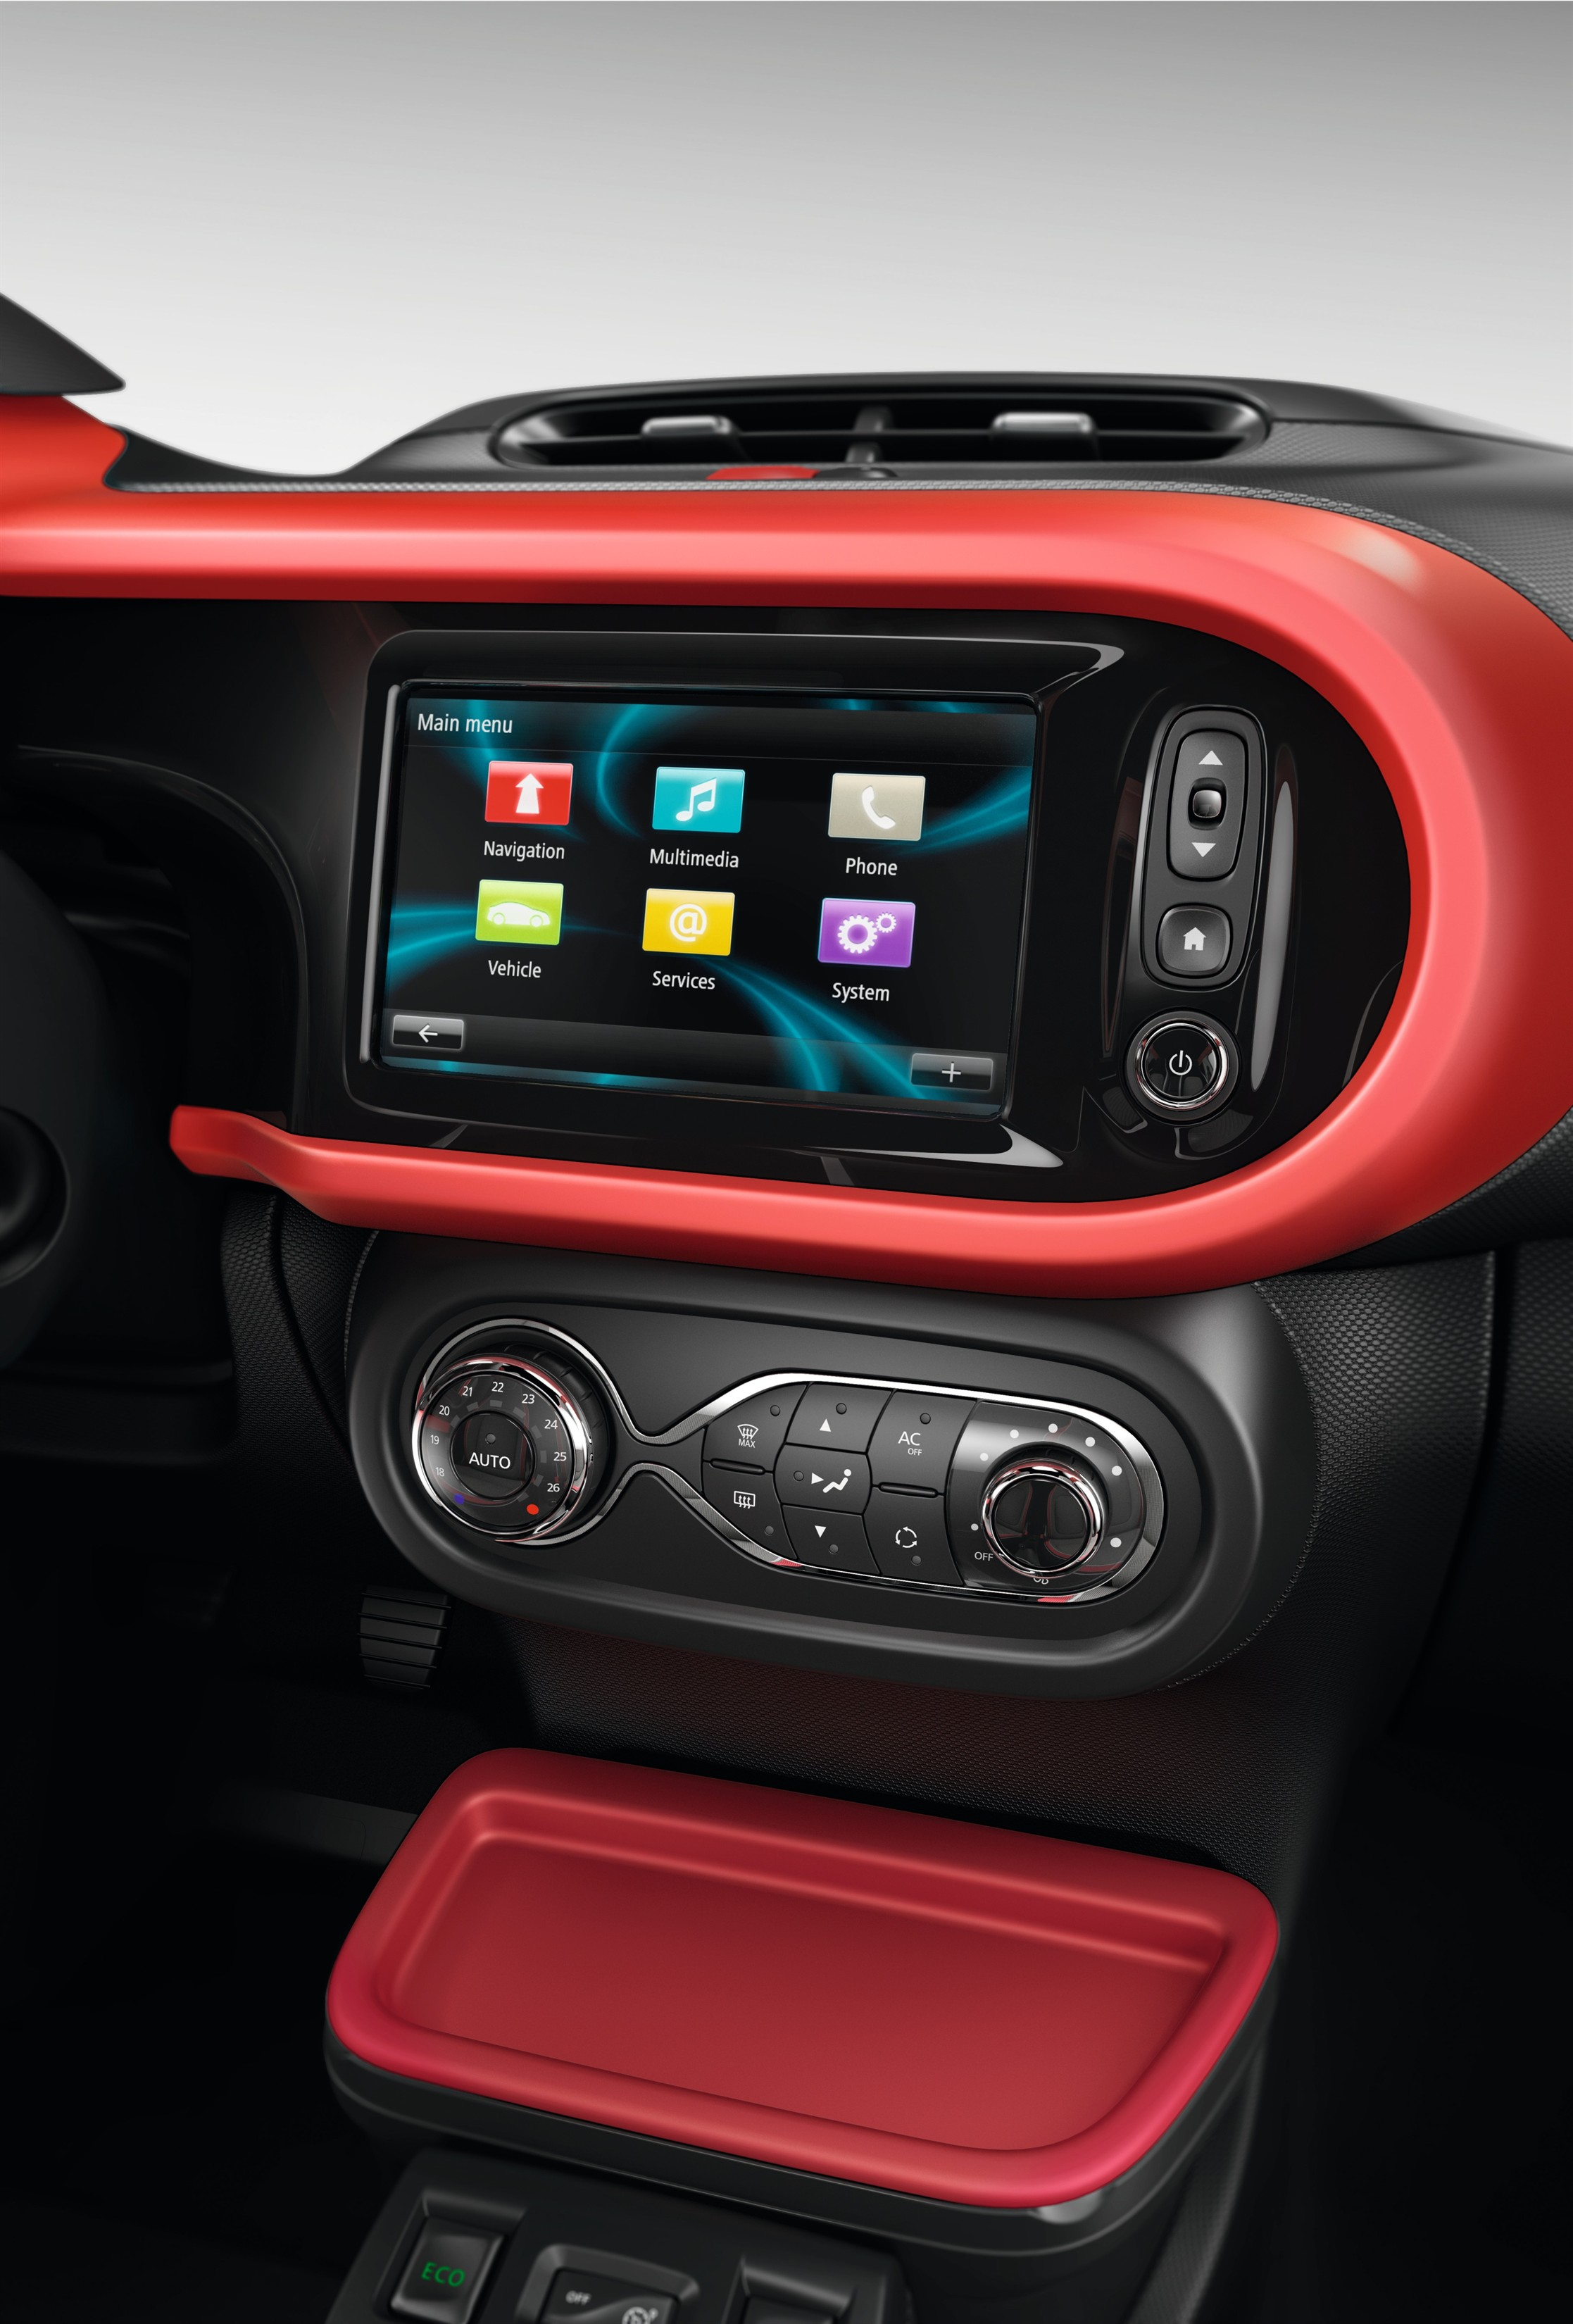 renault twingo tce 90 nieuw concept link2fleet for a smarter mobility. Black Bedroom Furniture Sets. Home Design Ideas